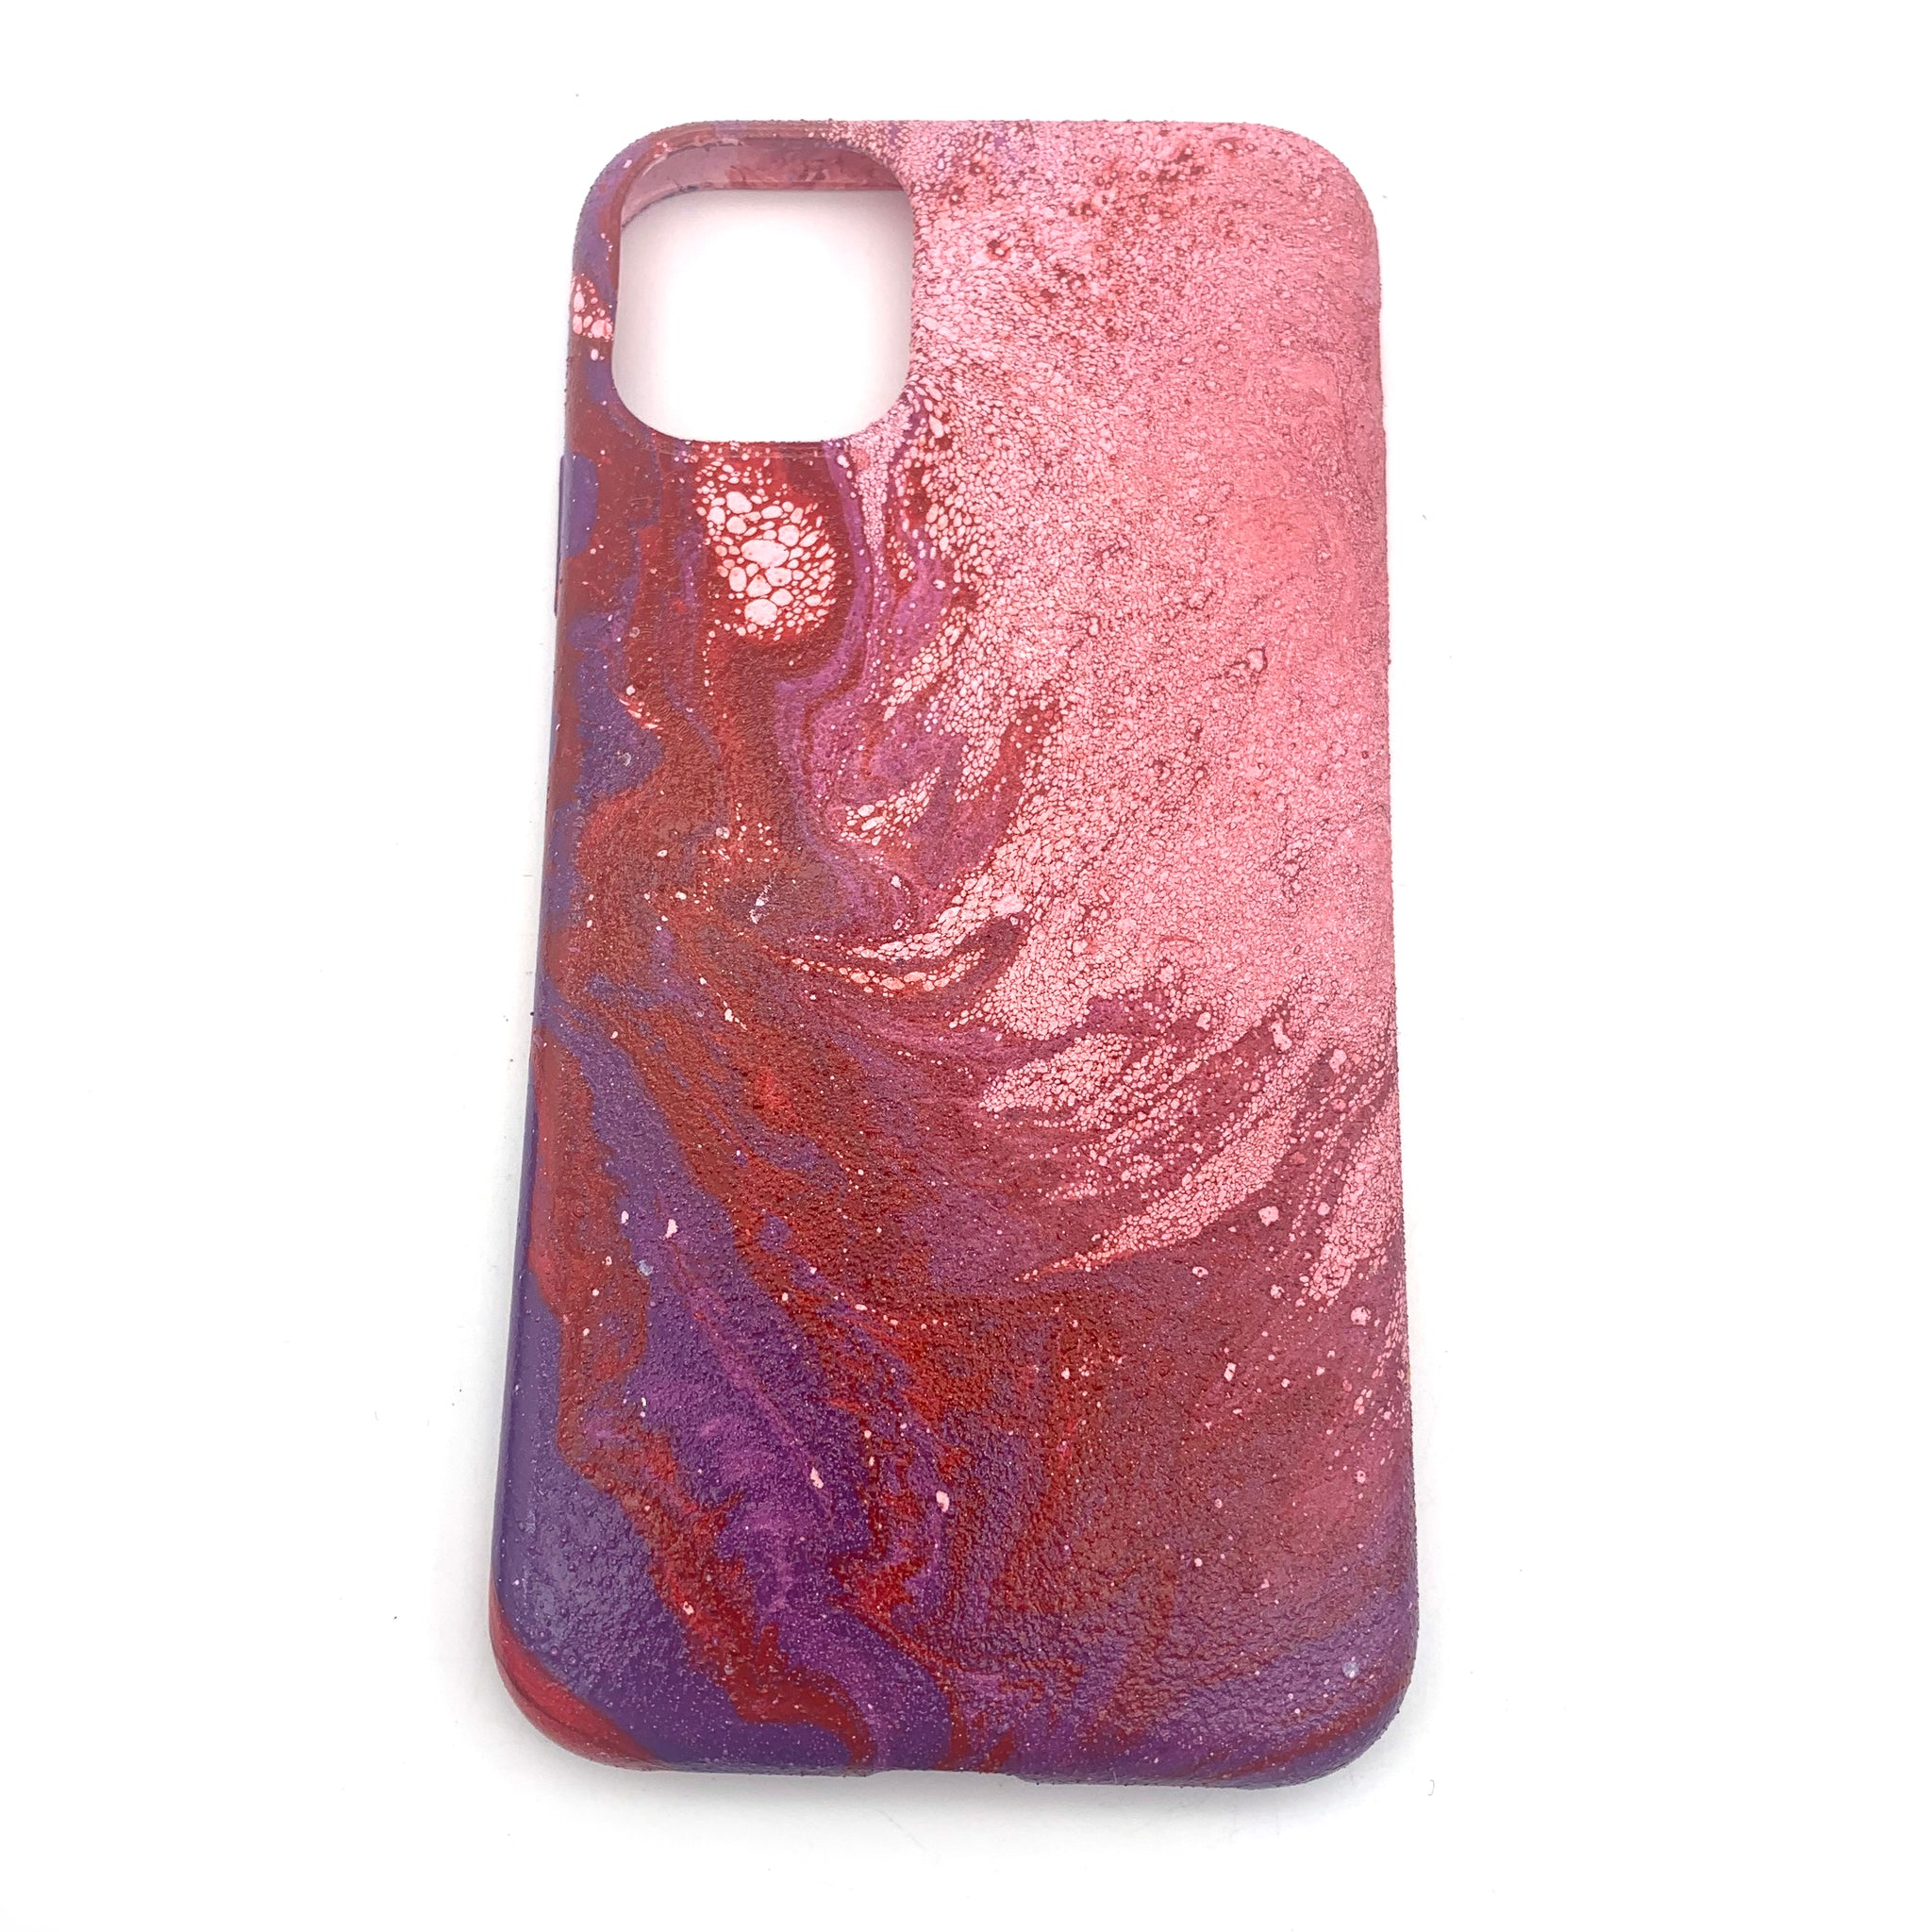 Hydro Dipped Phone Cases in Red Pink and Purple   - iPhone 11